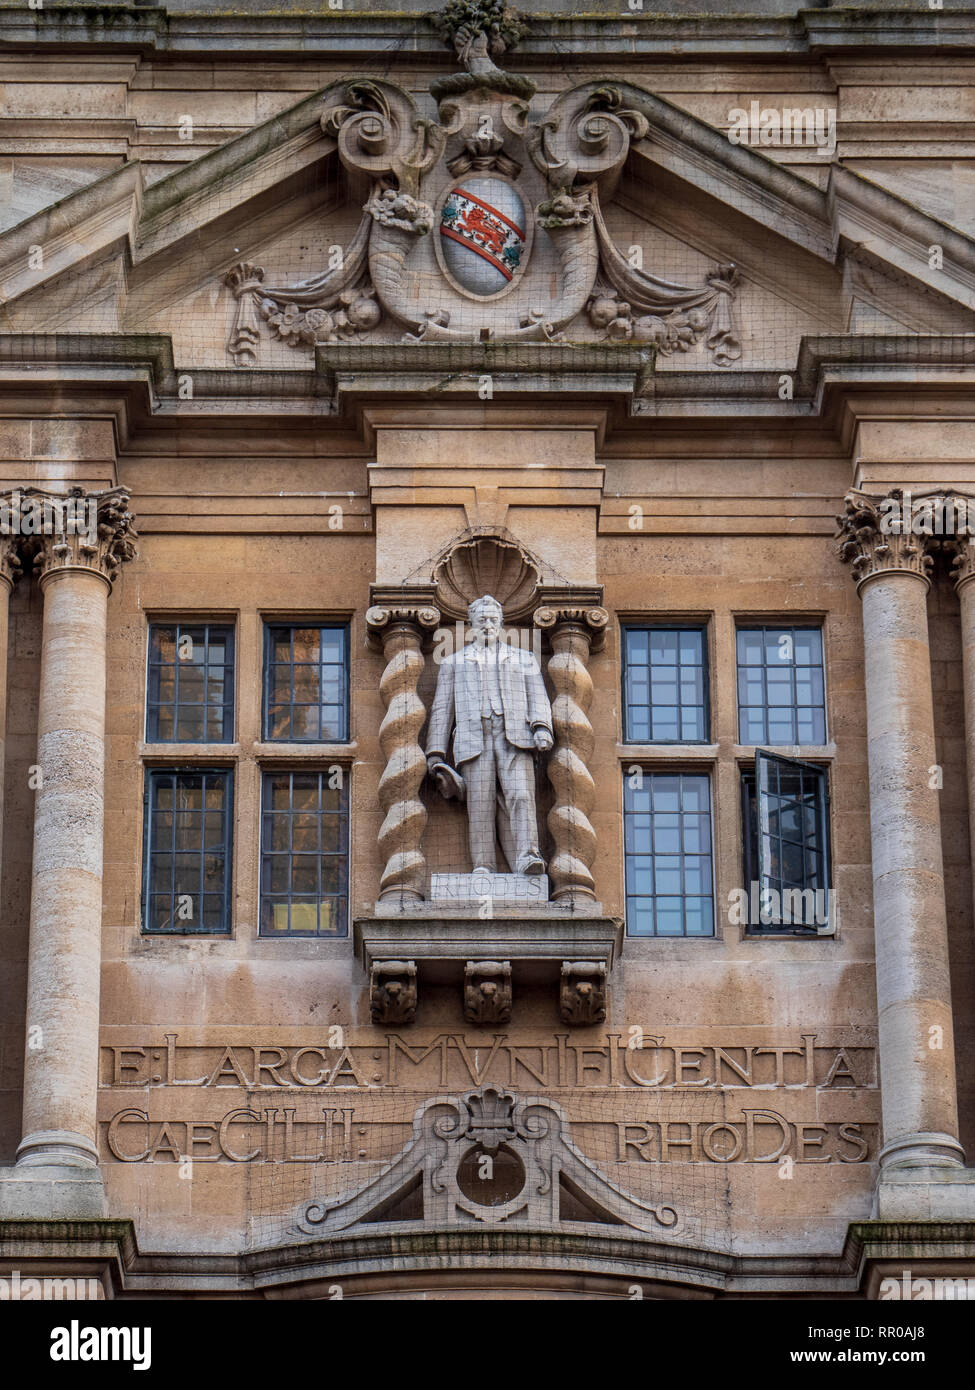 Cecil Rhodes Statue Oxford - the controversial statue of Cecil Rhodes on the Oriel College building in central Oxford UK - Stock Image